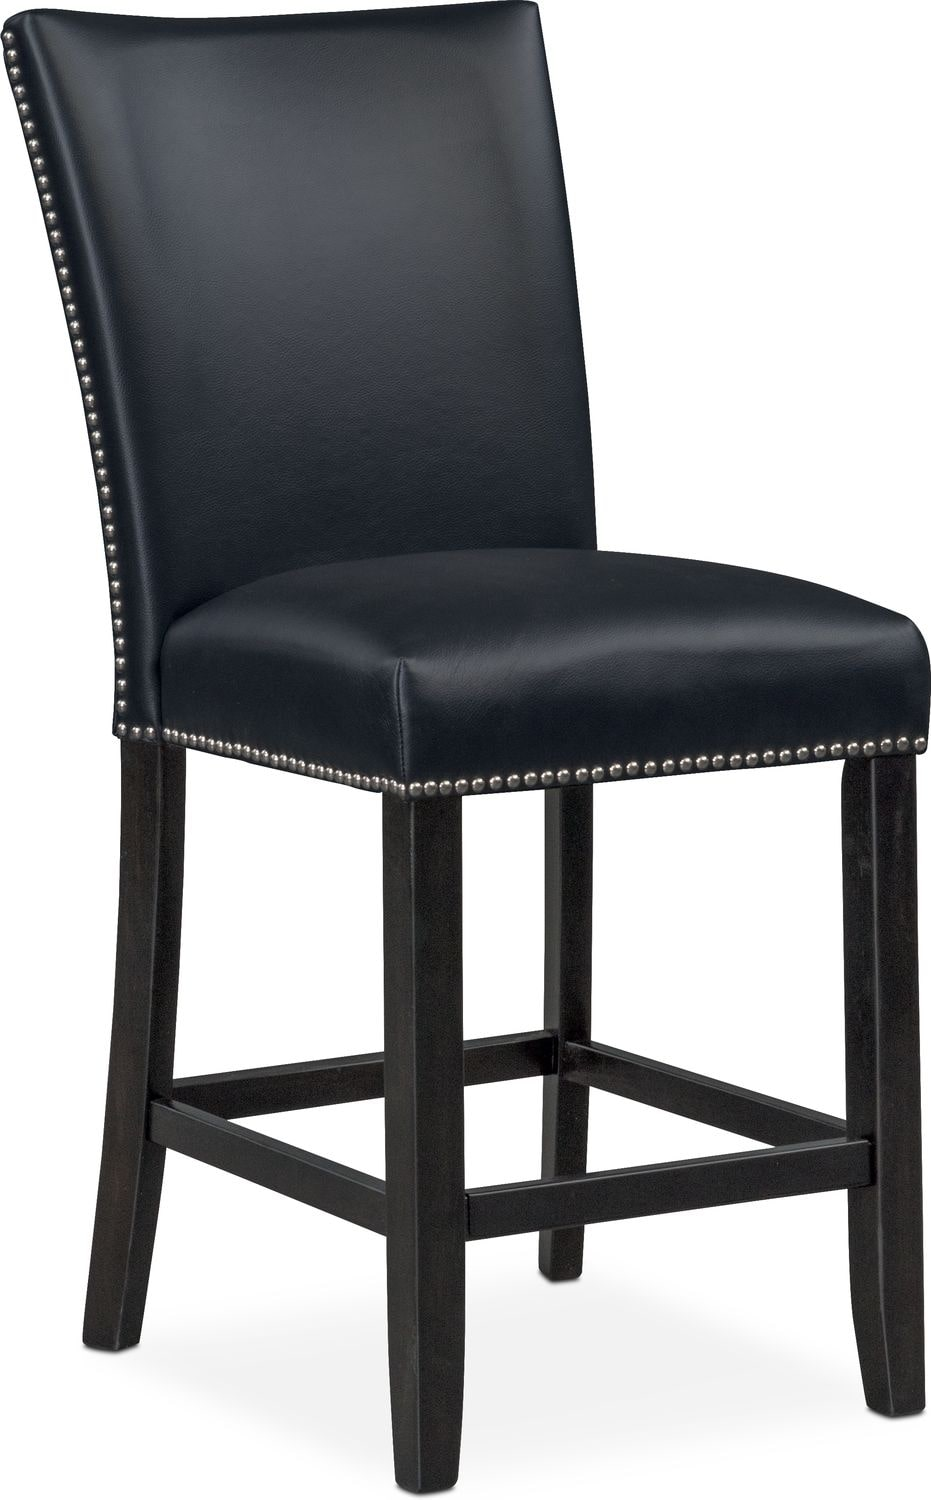 Charmant Dining Room Furniture   Artemis Counter Height Upholstered Stool   Black